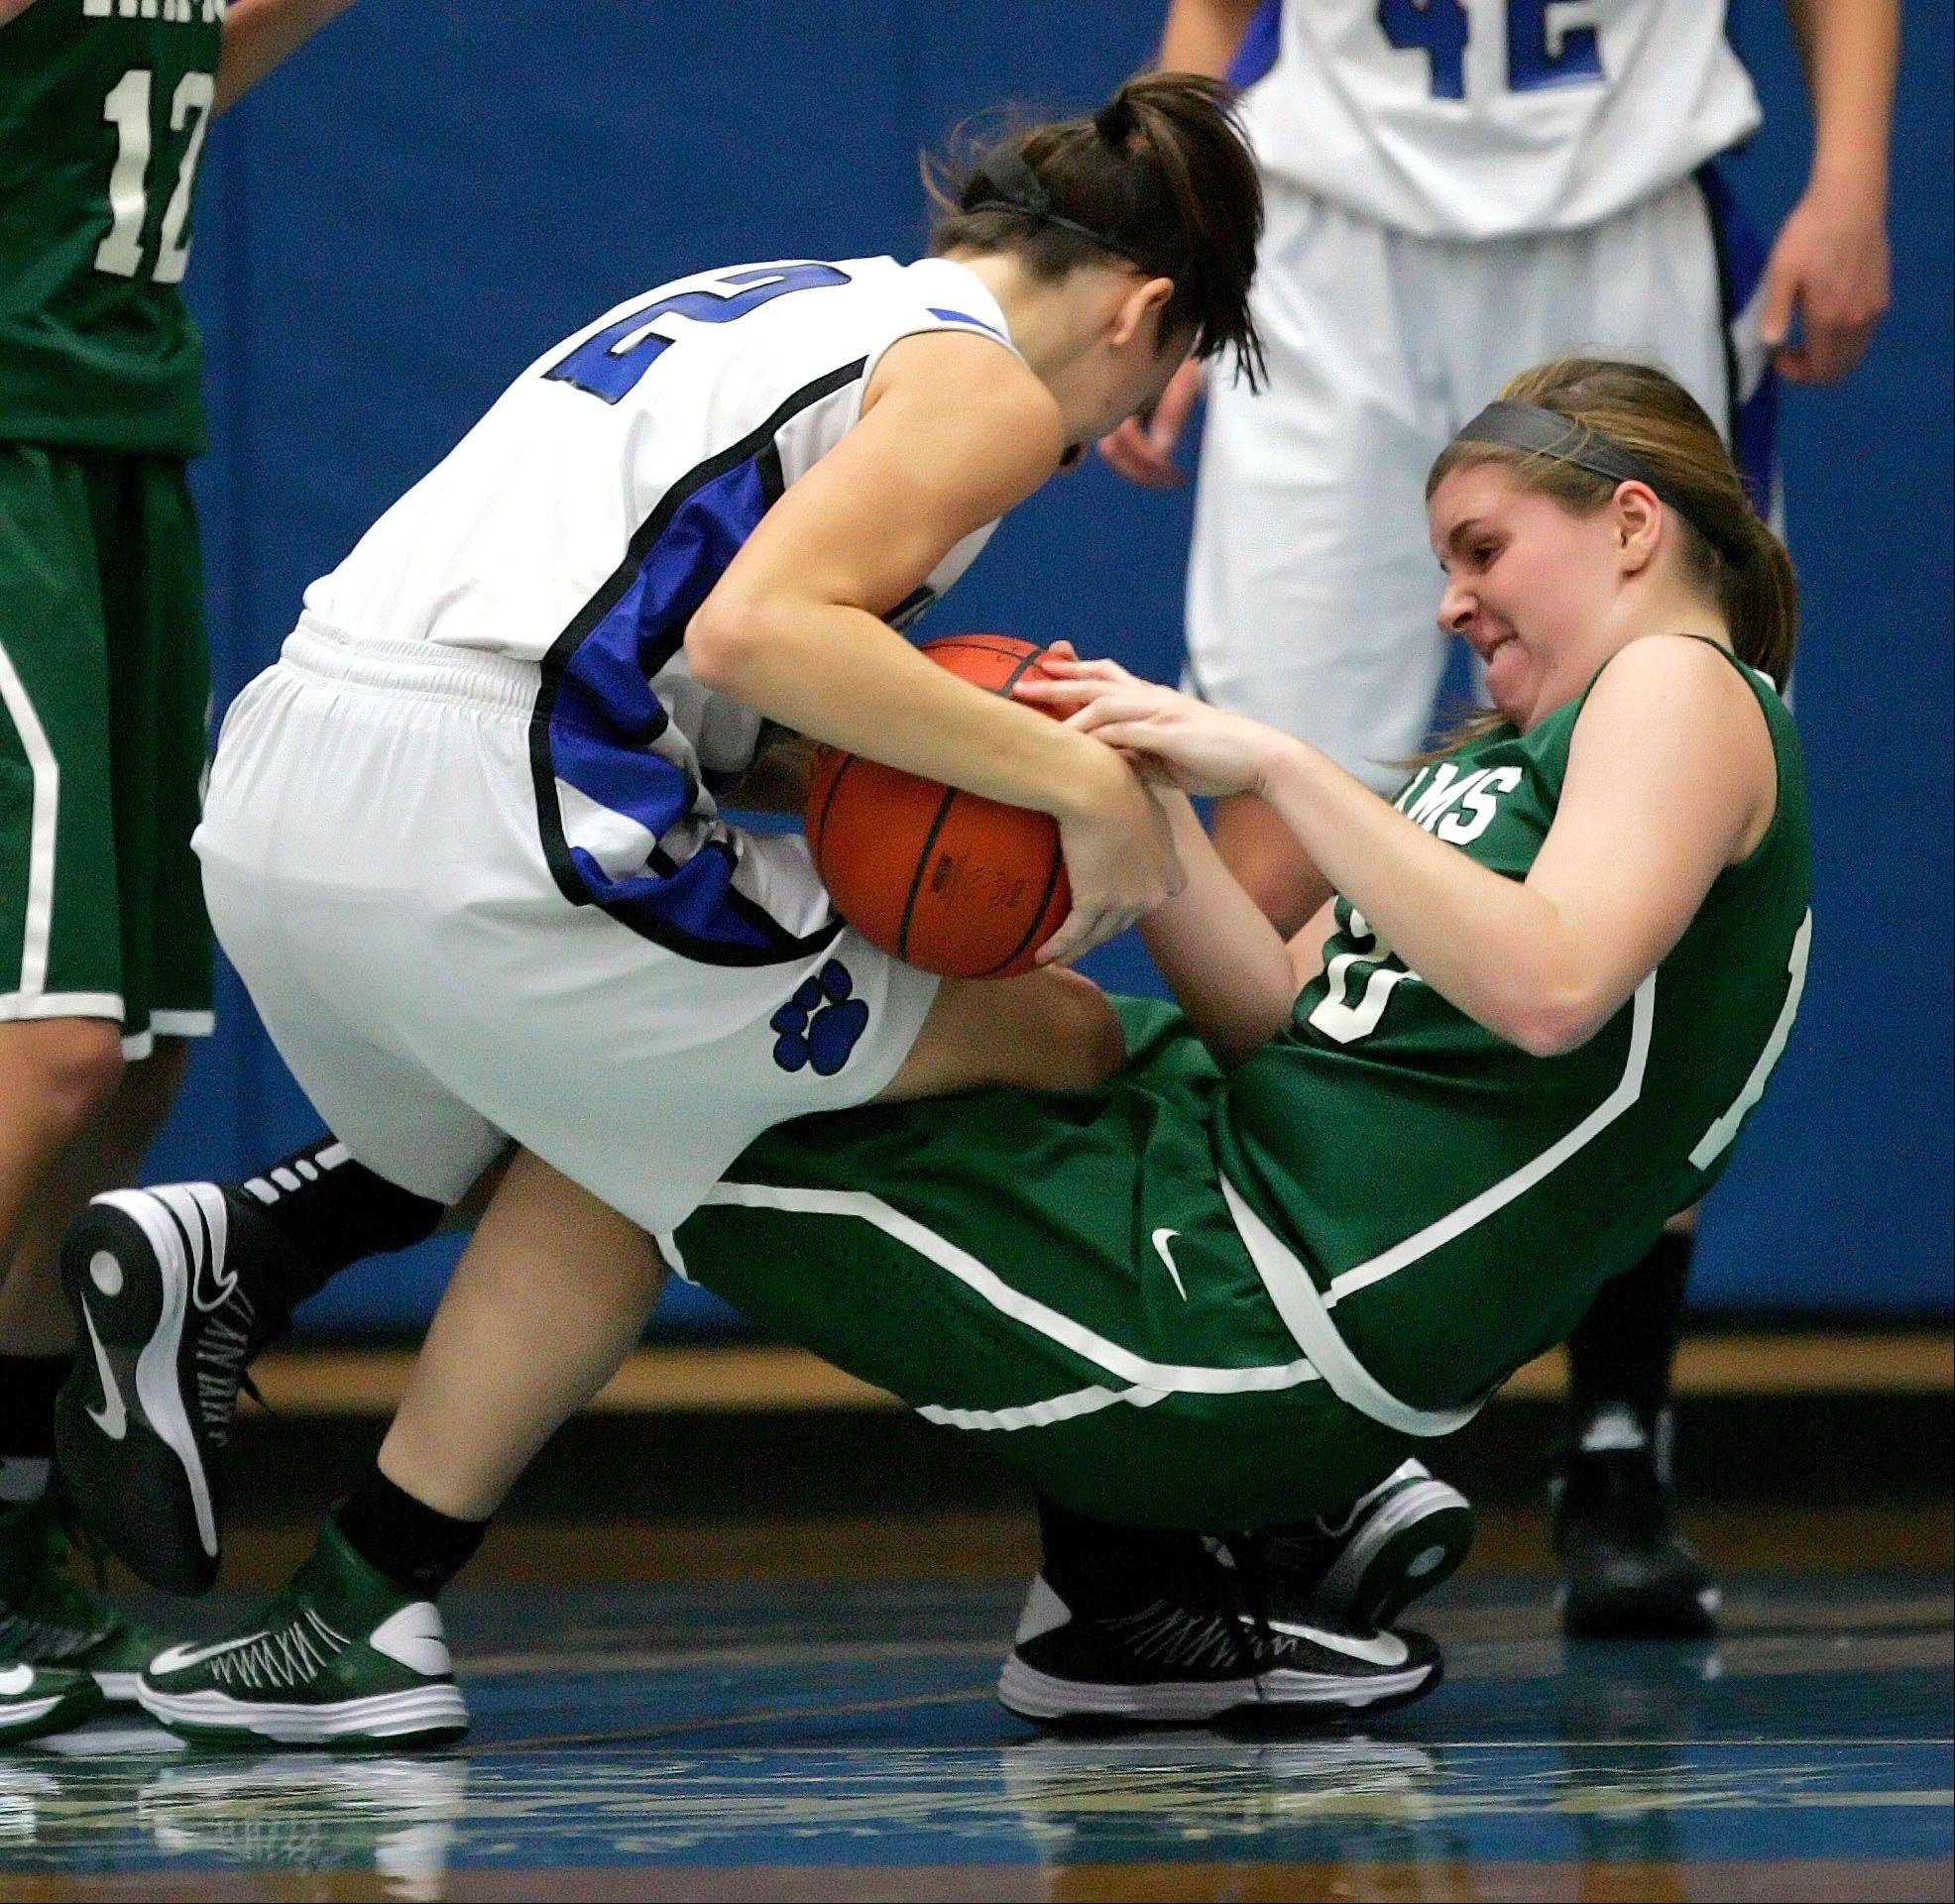 Vernon Hills' Alina Lehocky , left, and Grayslake Central's Maddy Miller battle for a loose ball Tuesday night at Vernon Hills High School.